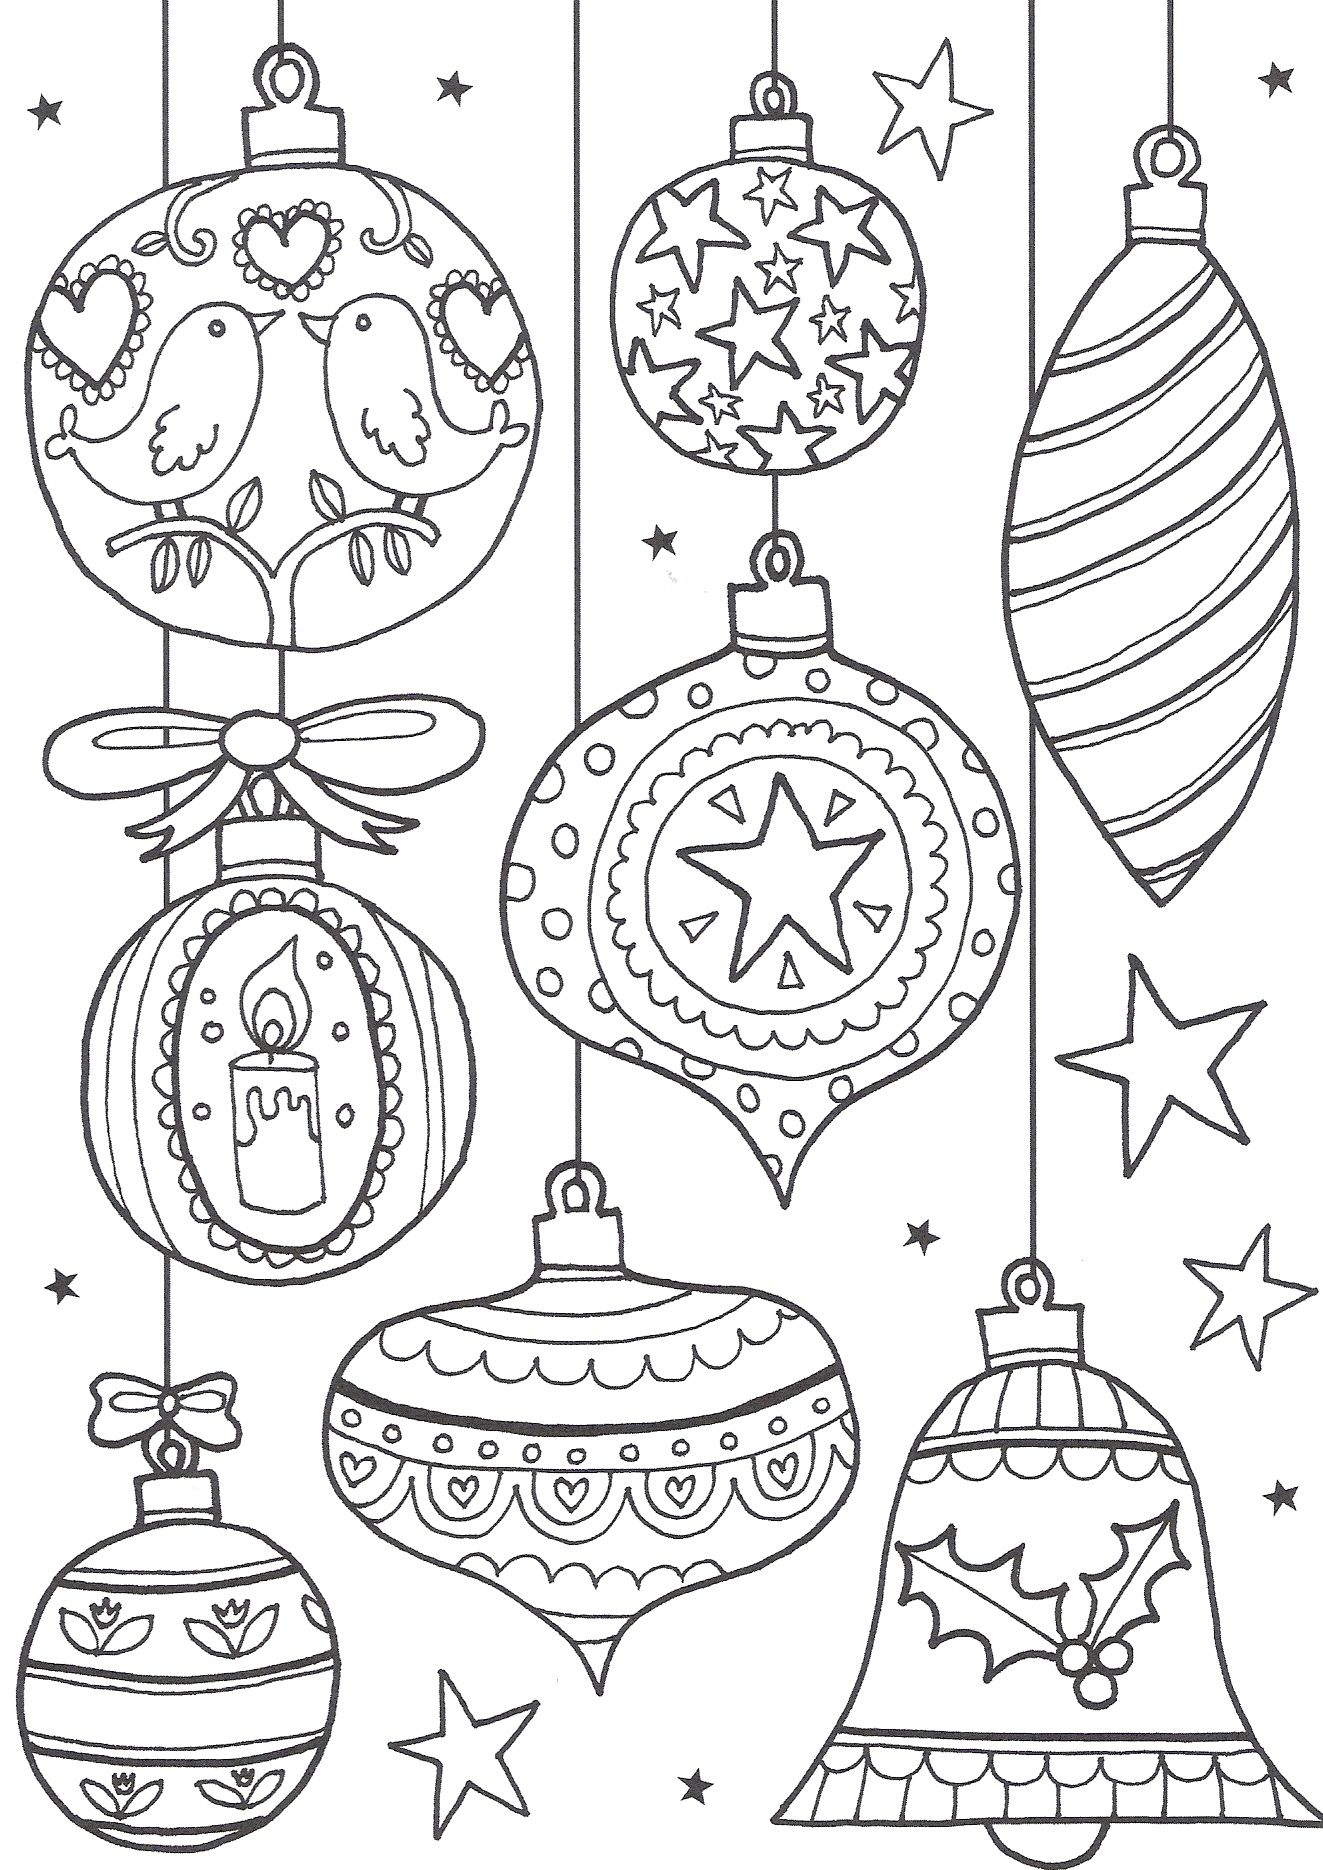 Coloring Pages About Christmas With Free Colouring For Adults The Ultimate Roundup